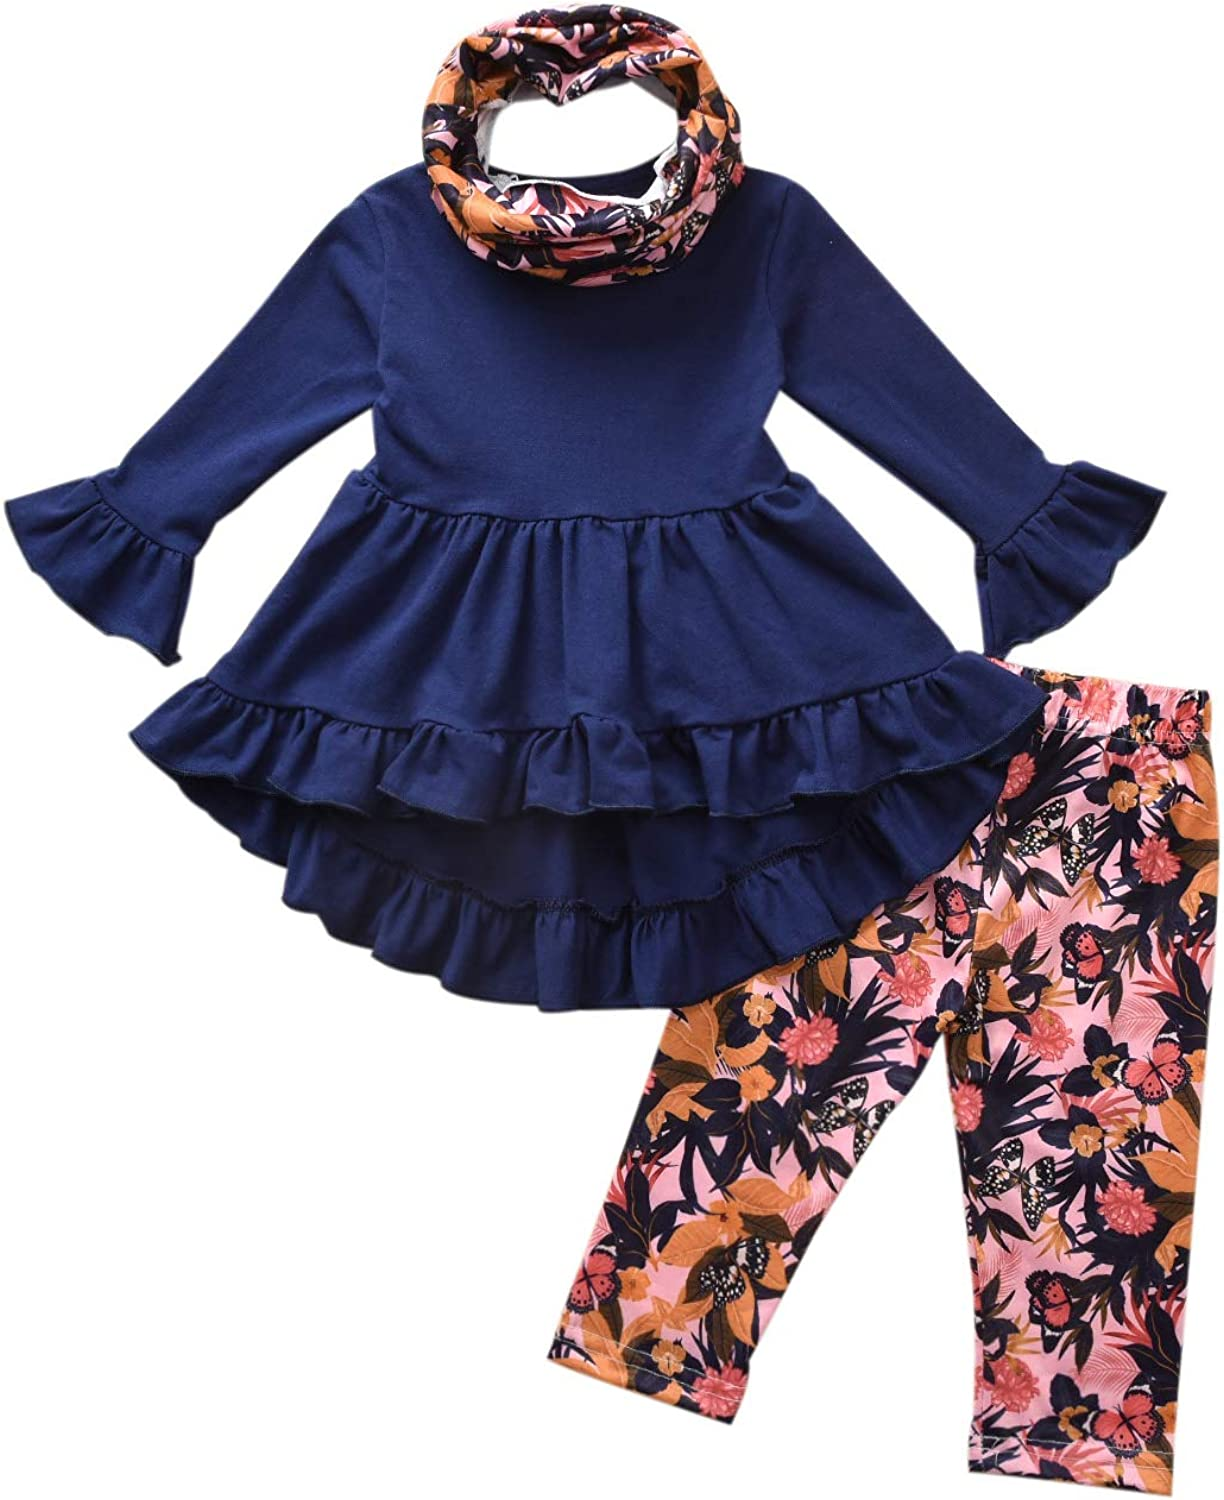 Fasouem Baby Girl Long Sleeve Top Shirt Suspender Bow Pants Set Little Toddler Valentines Day Outfits Set